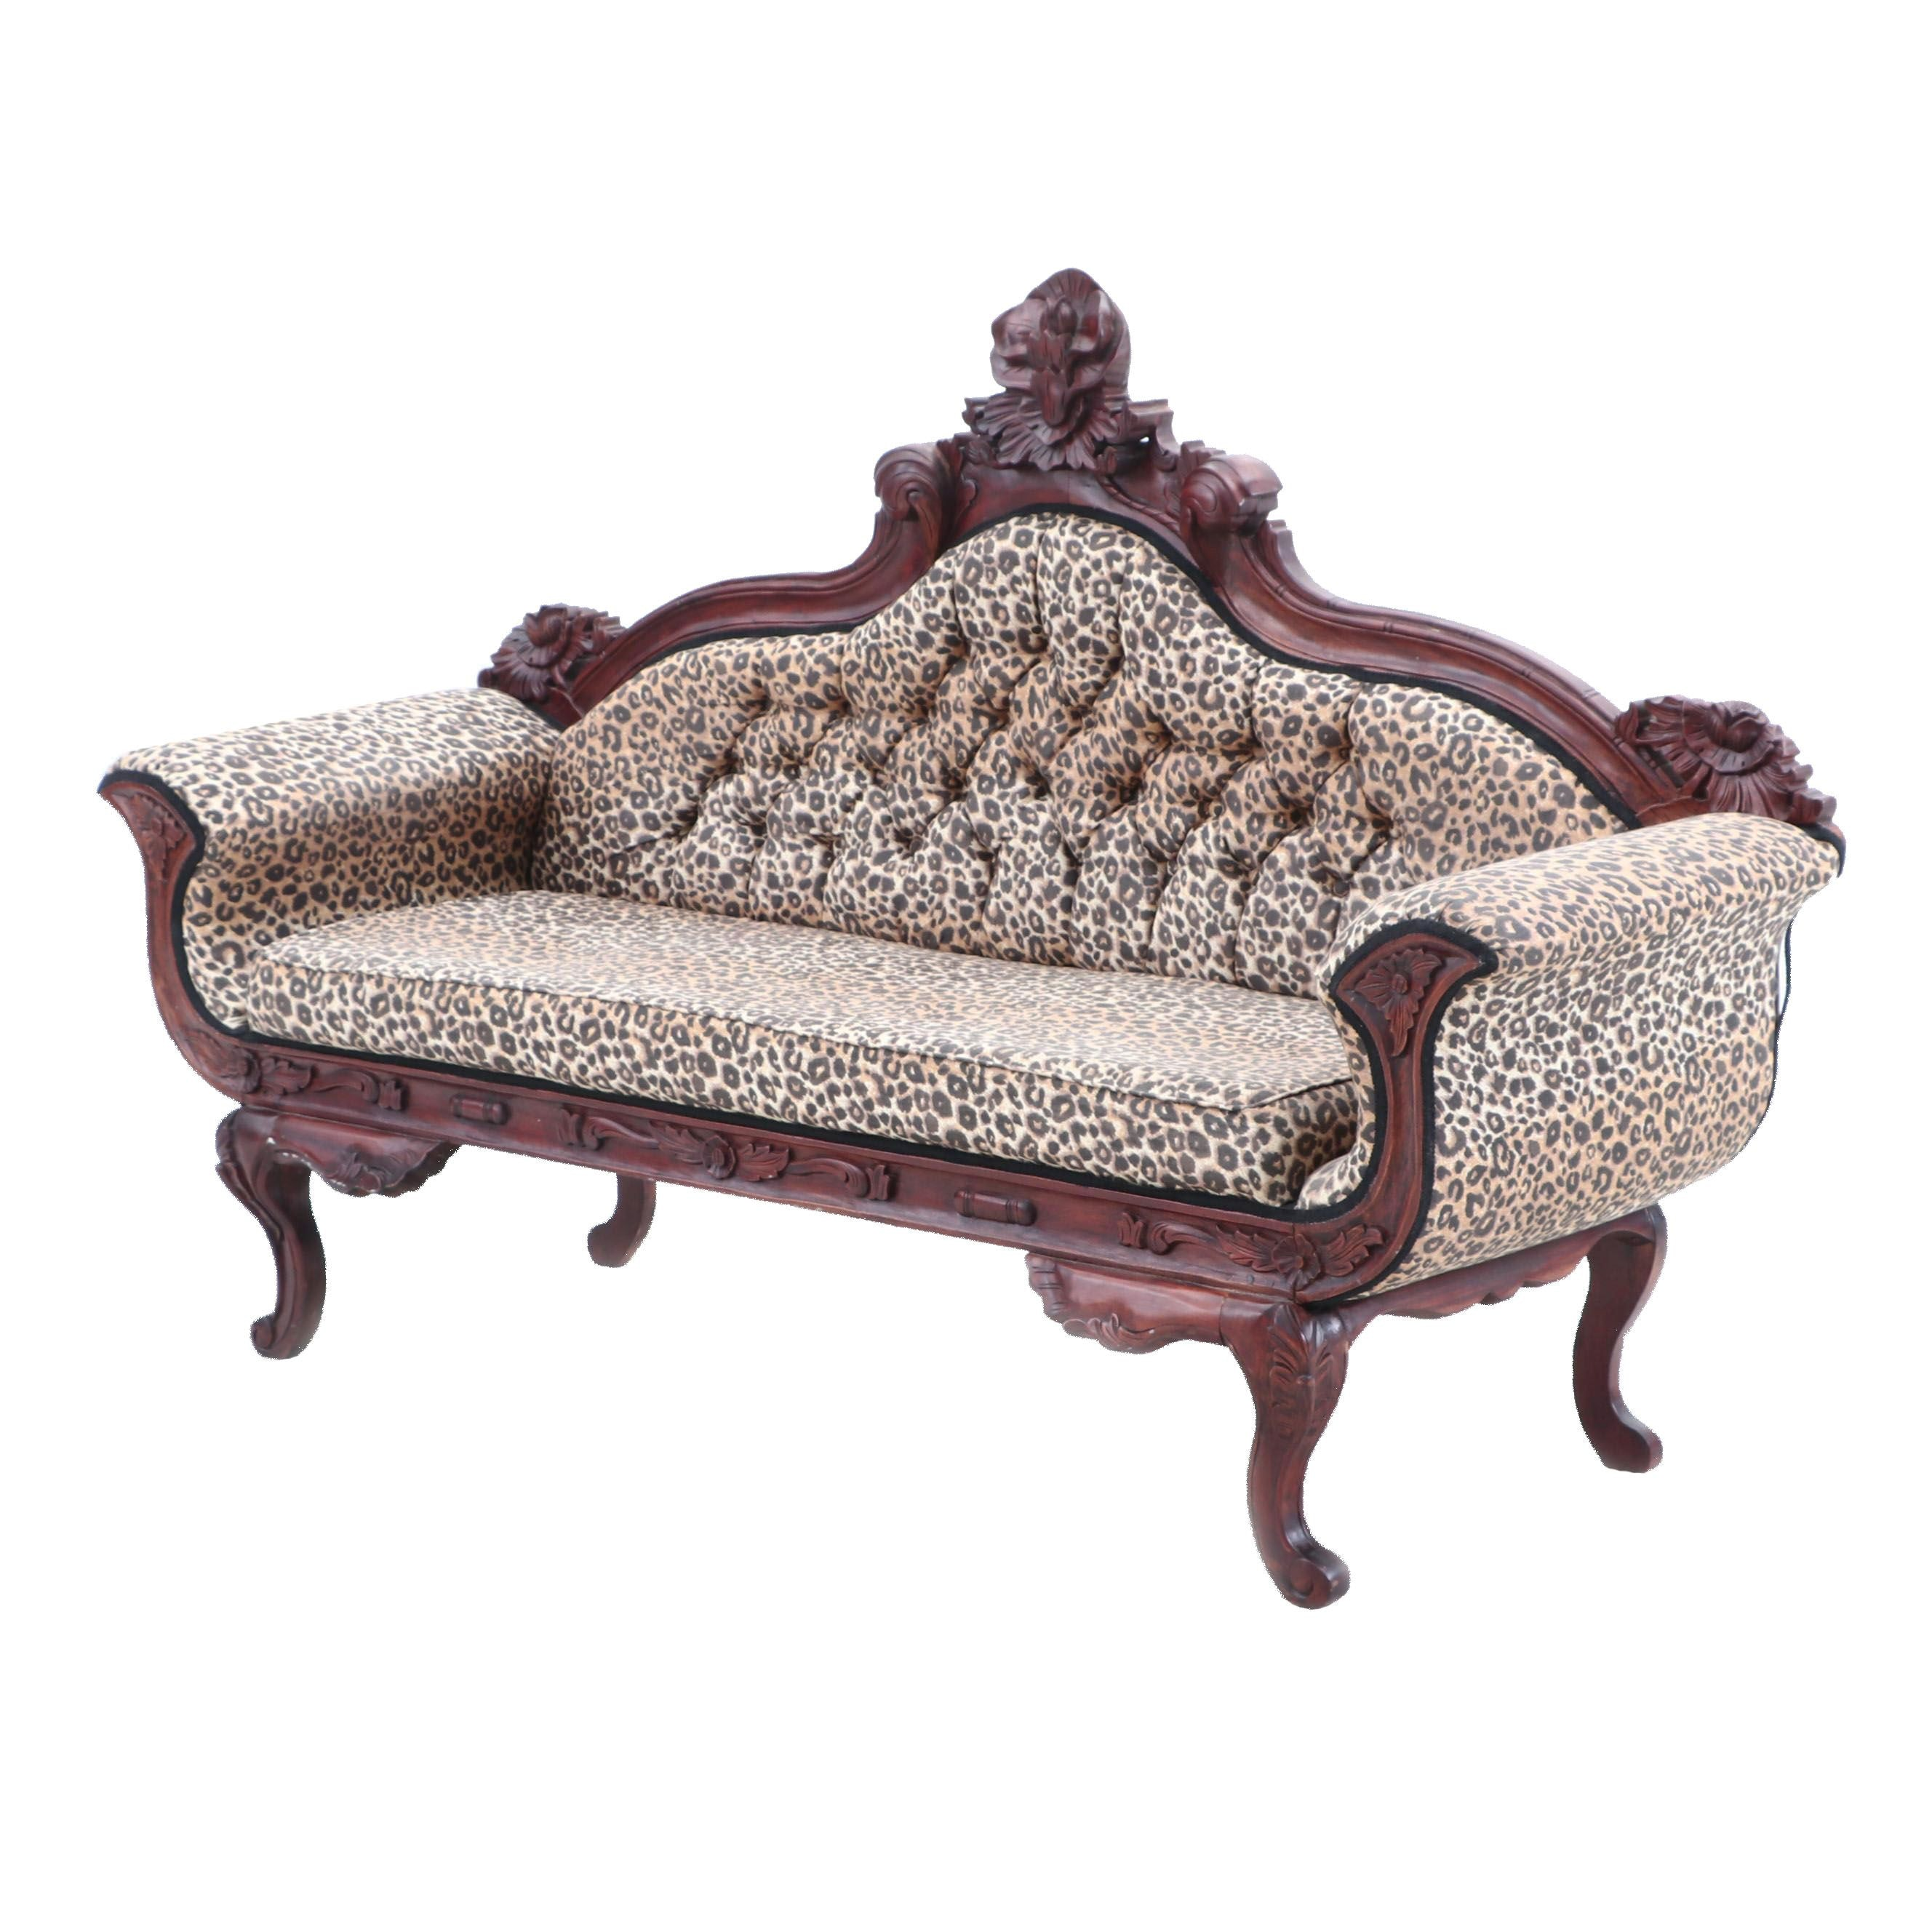 Contemporary Victorian Rococo Revival Style Button Tufted Sofa in Hardwood